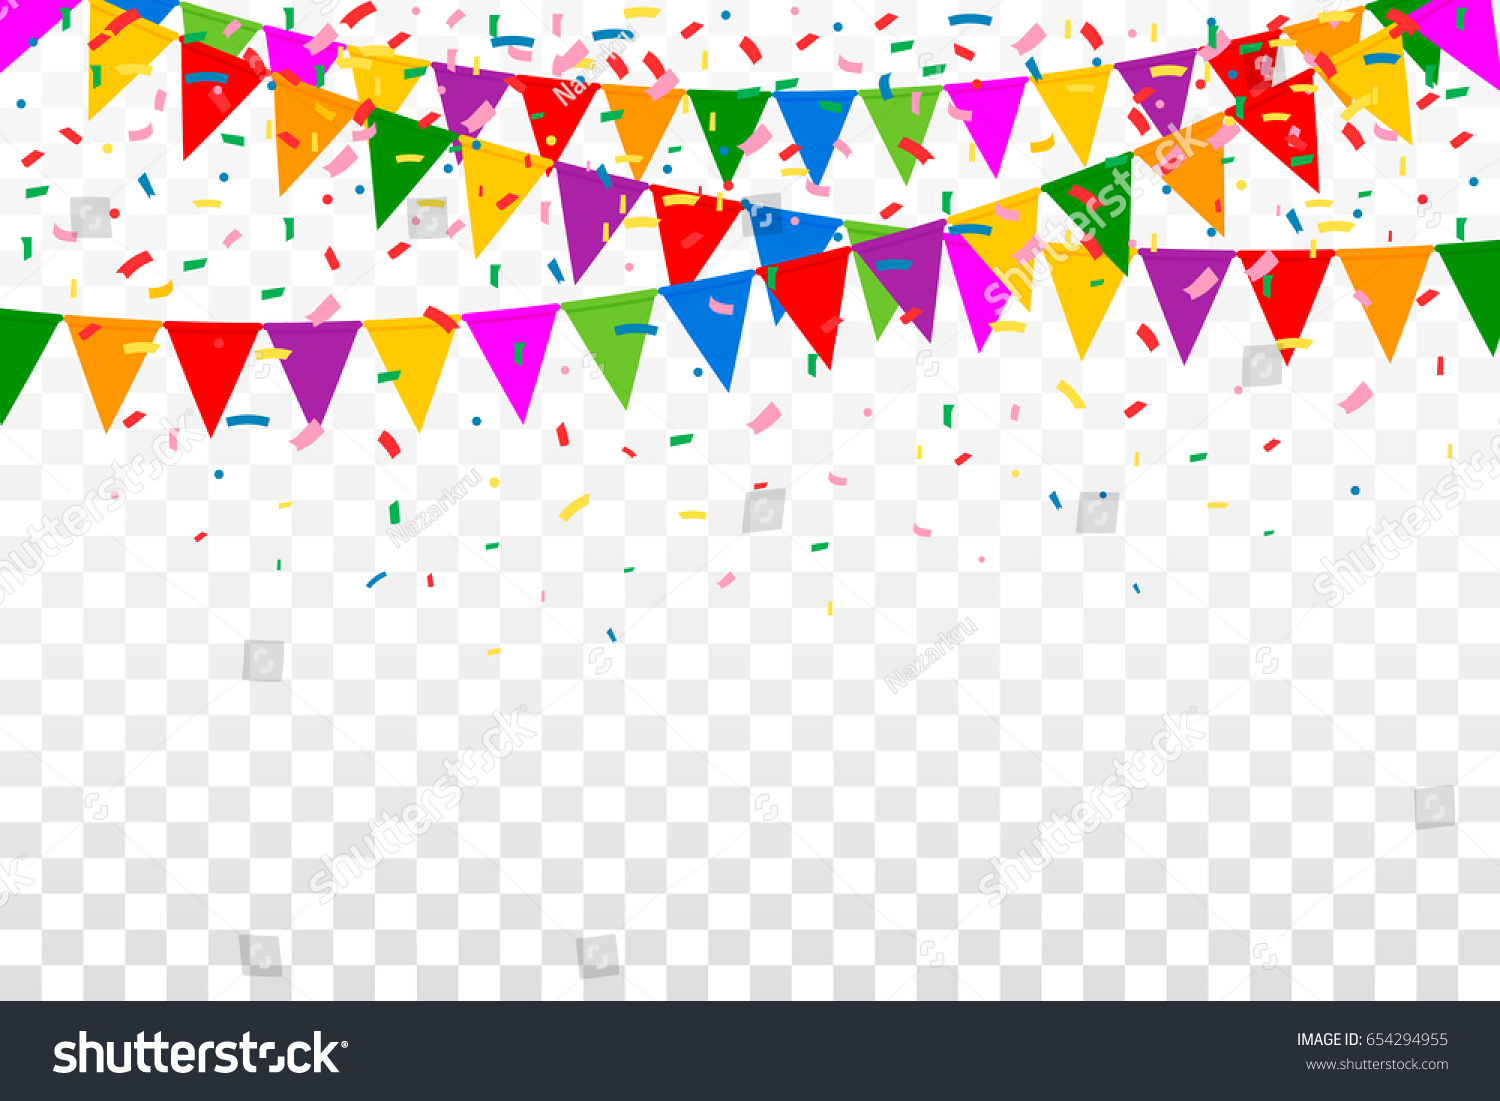 Celebration Web Banner Colorful Party Flags Stock Vector 654294955 - Shutterstock